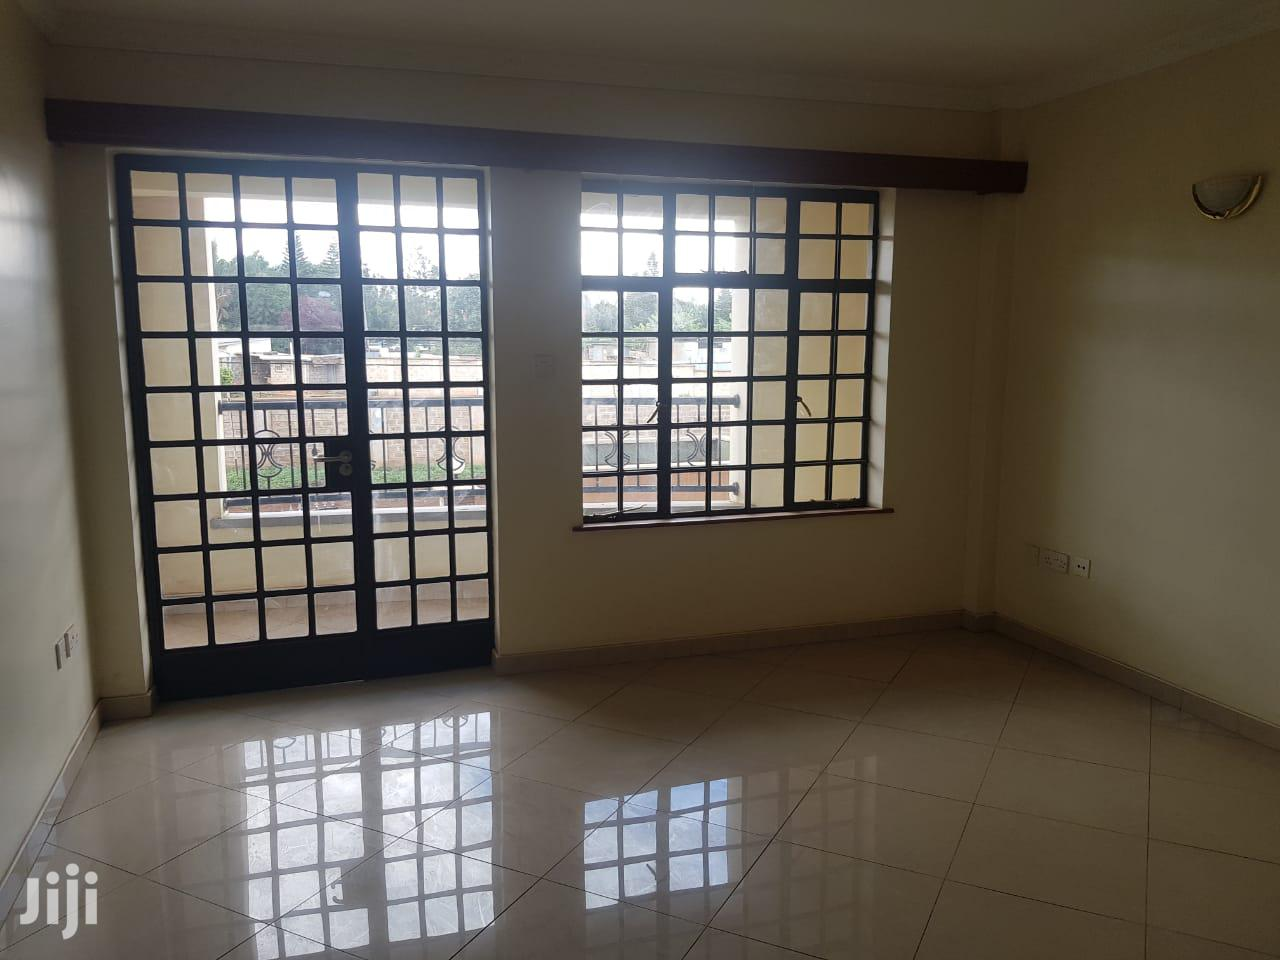 Gardens Estate Apartment Thome | Houses & Apartments For Rent for sale in Baba Dogo, Nairobi, Kenya